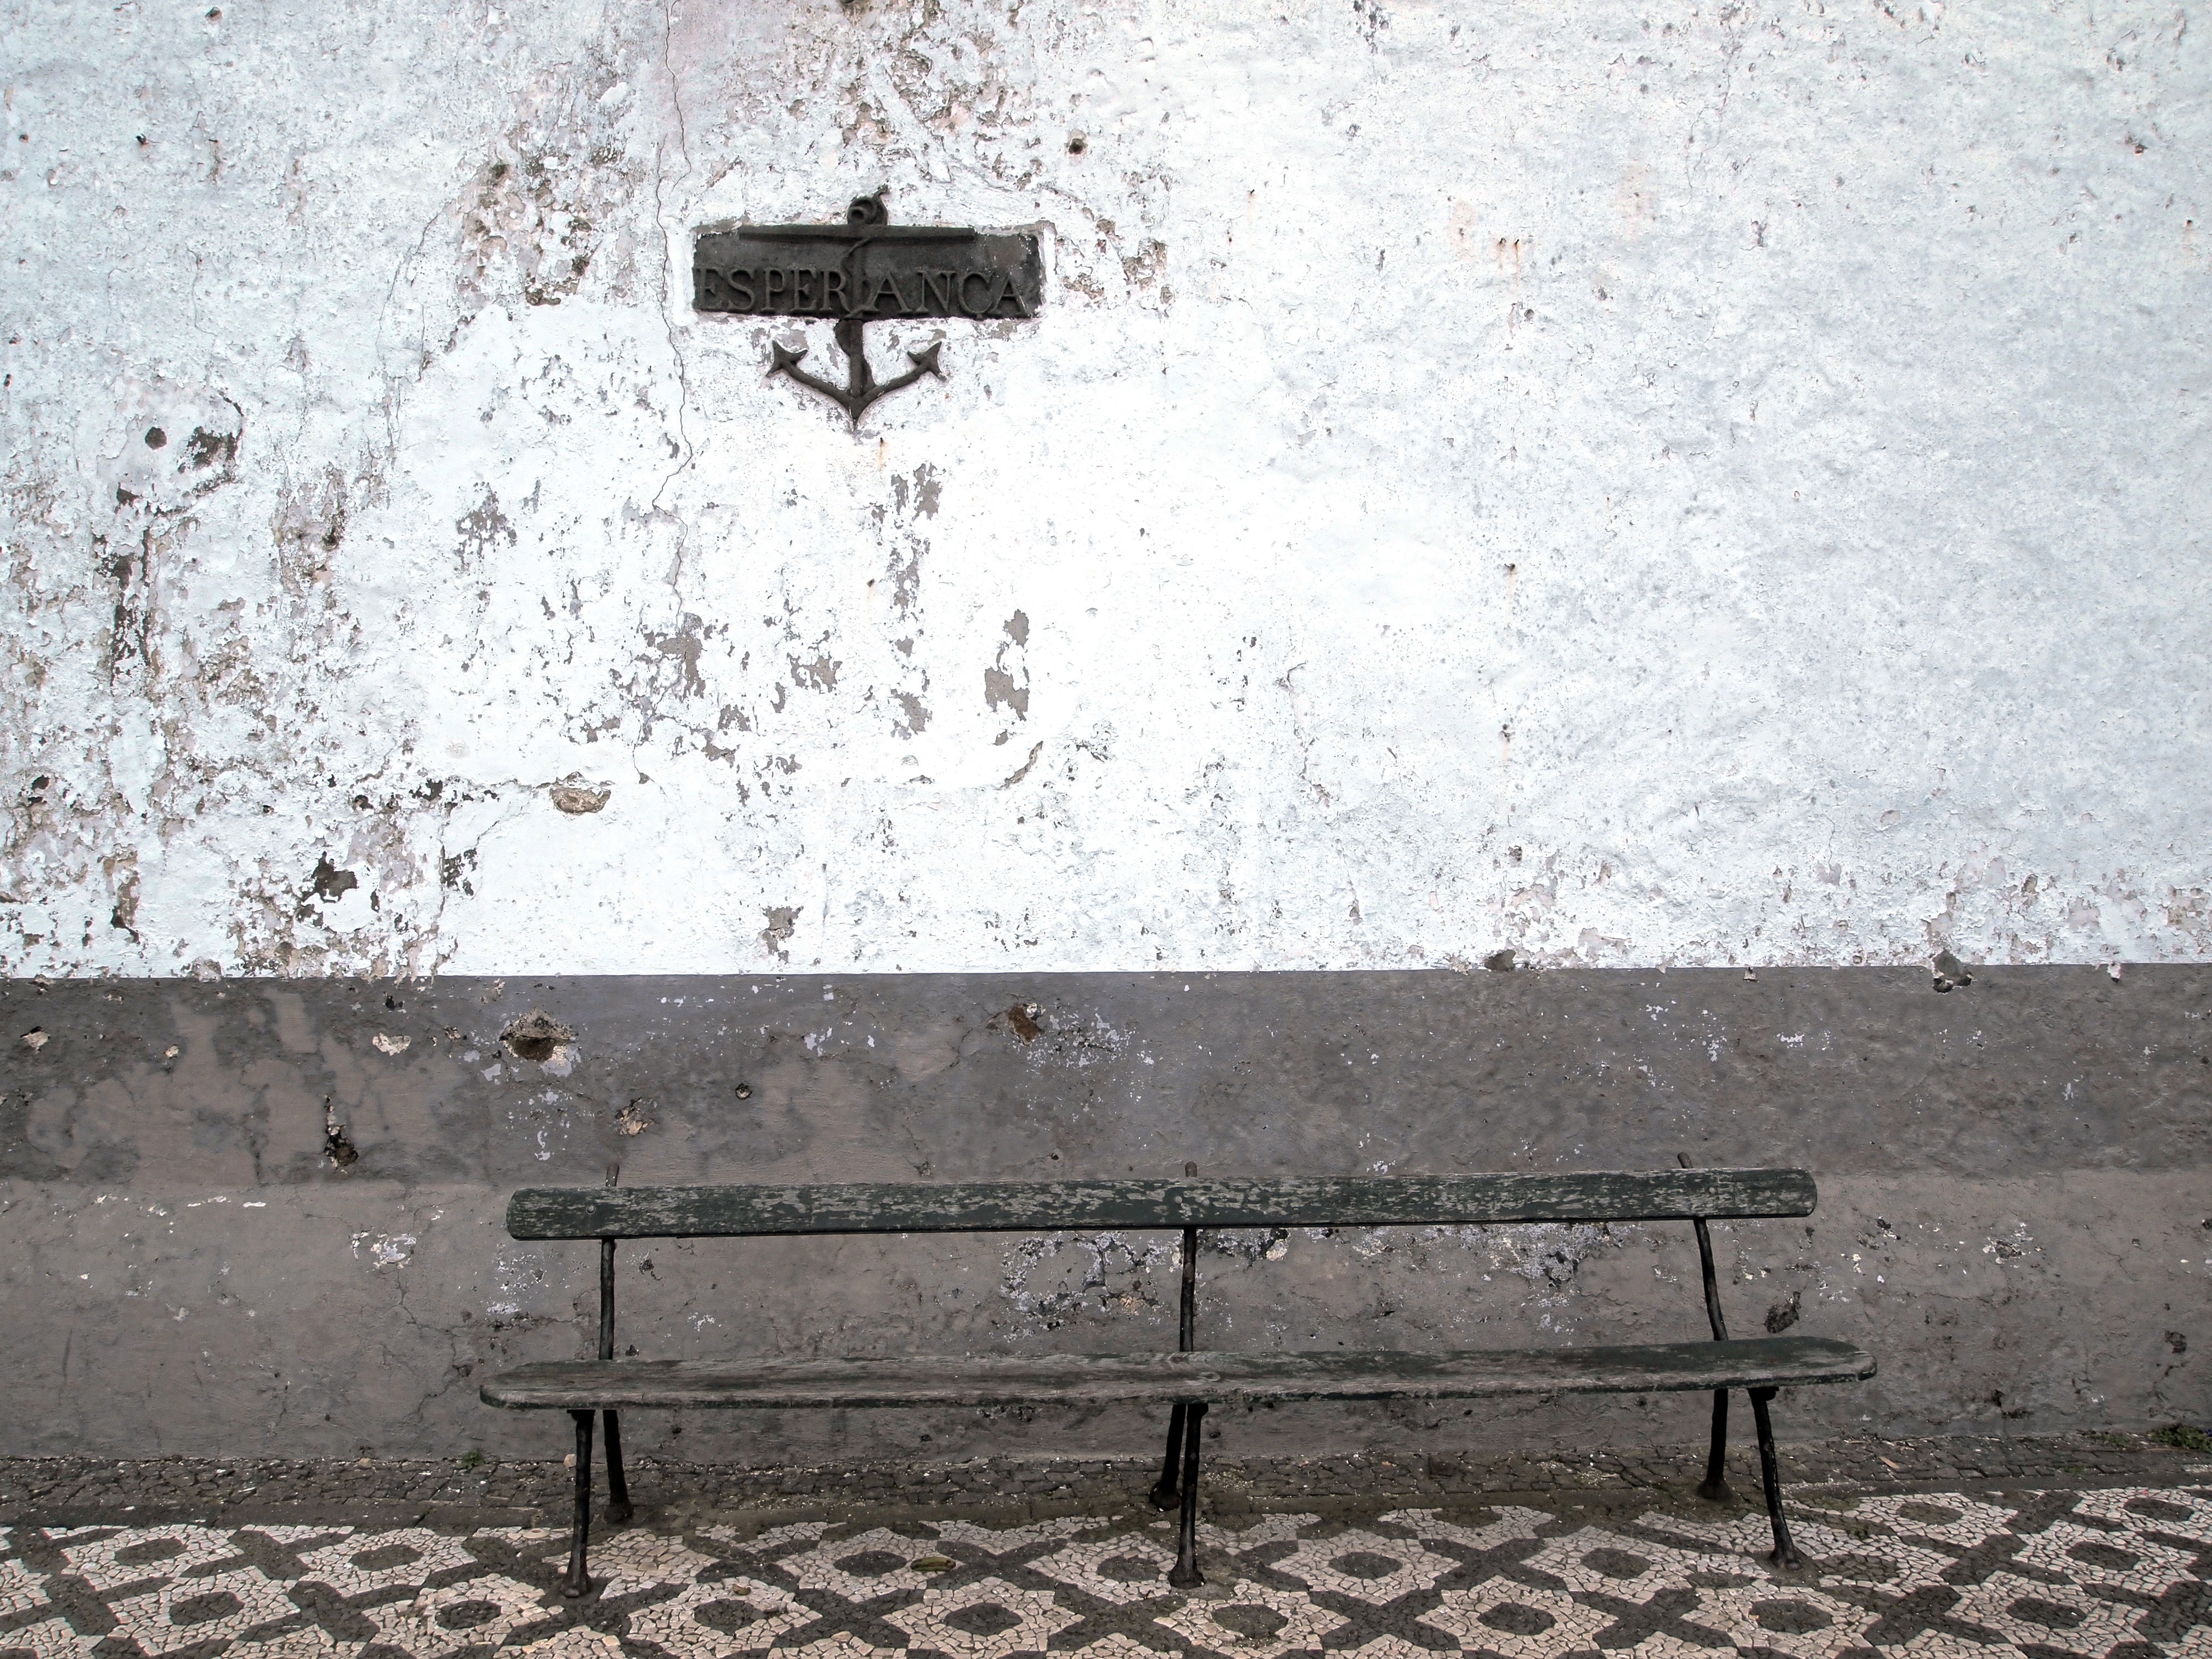 bench, bank, wooden sides, white wall, anchor